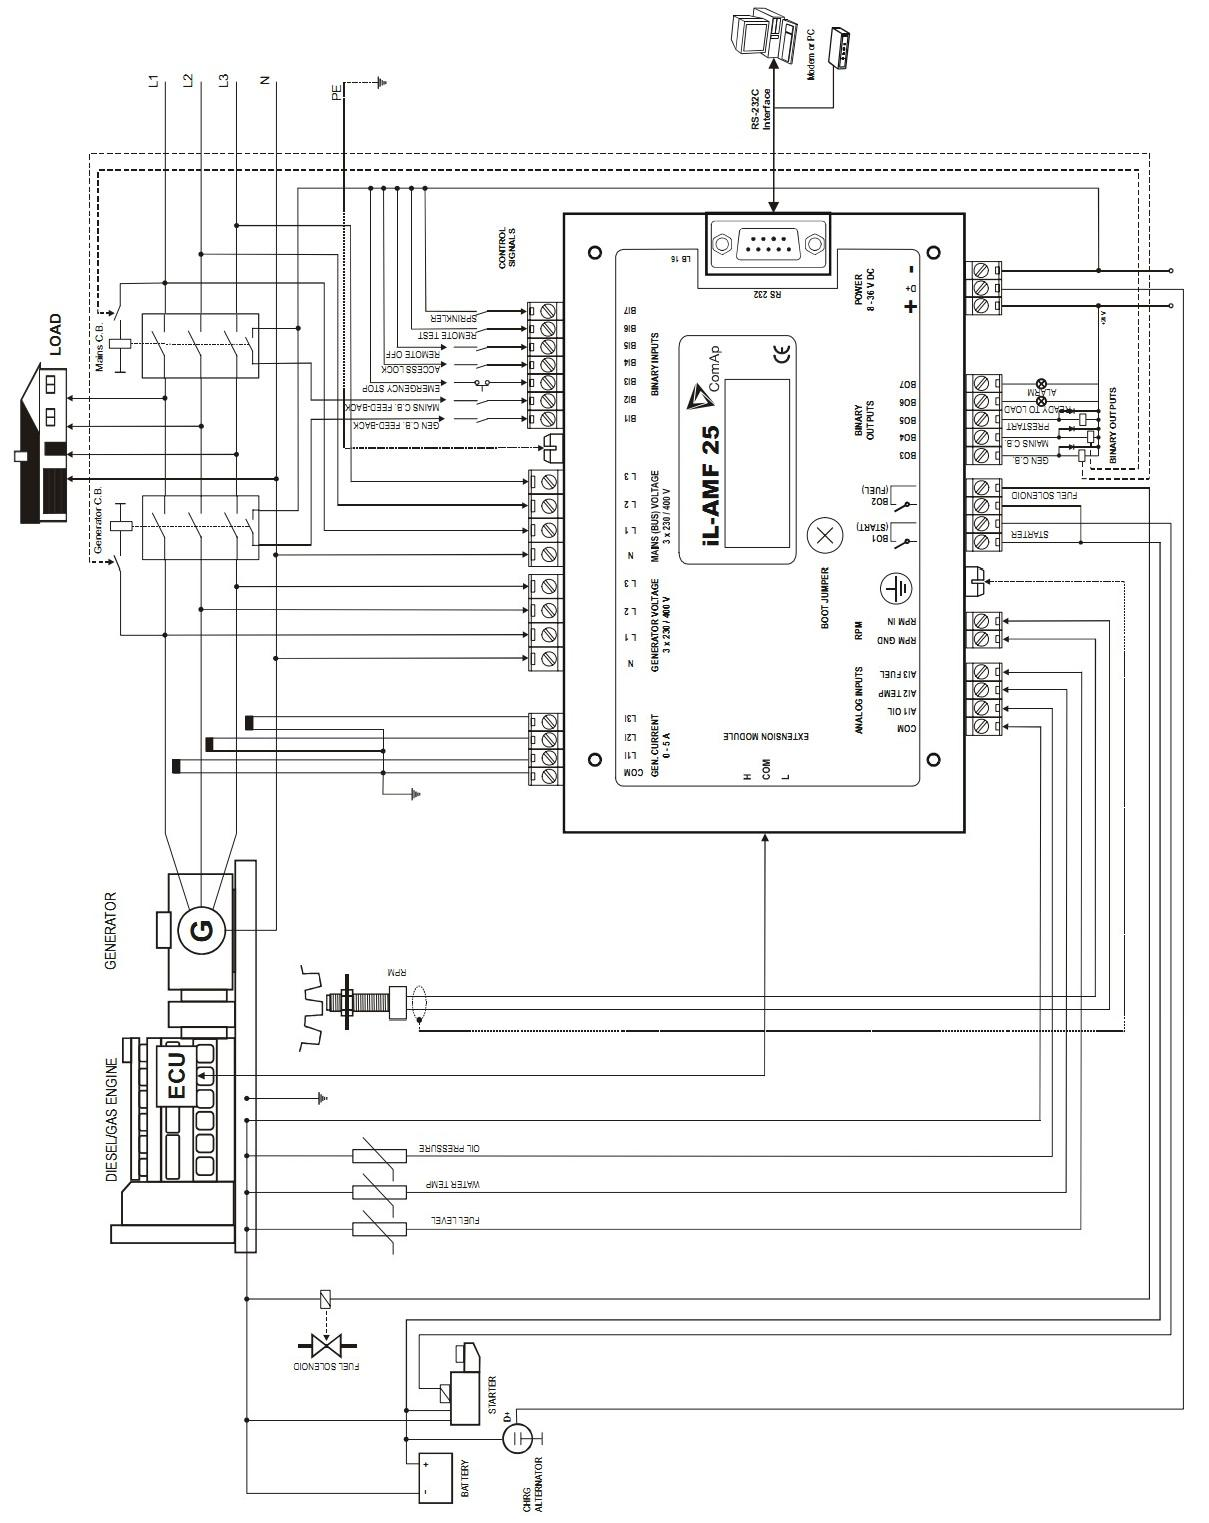 201210228323863 as440 avr wiring diagram wiring lights \u2022 wiring diagrams j stamford avr as440 wiring diagram at fashall.co